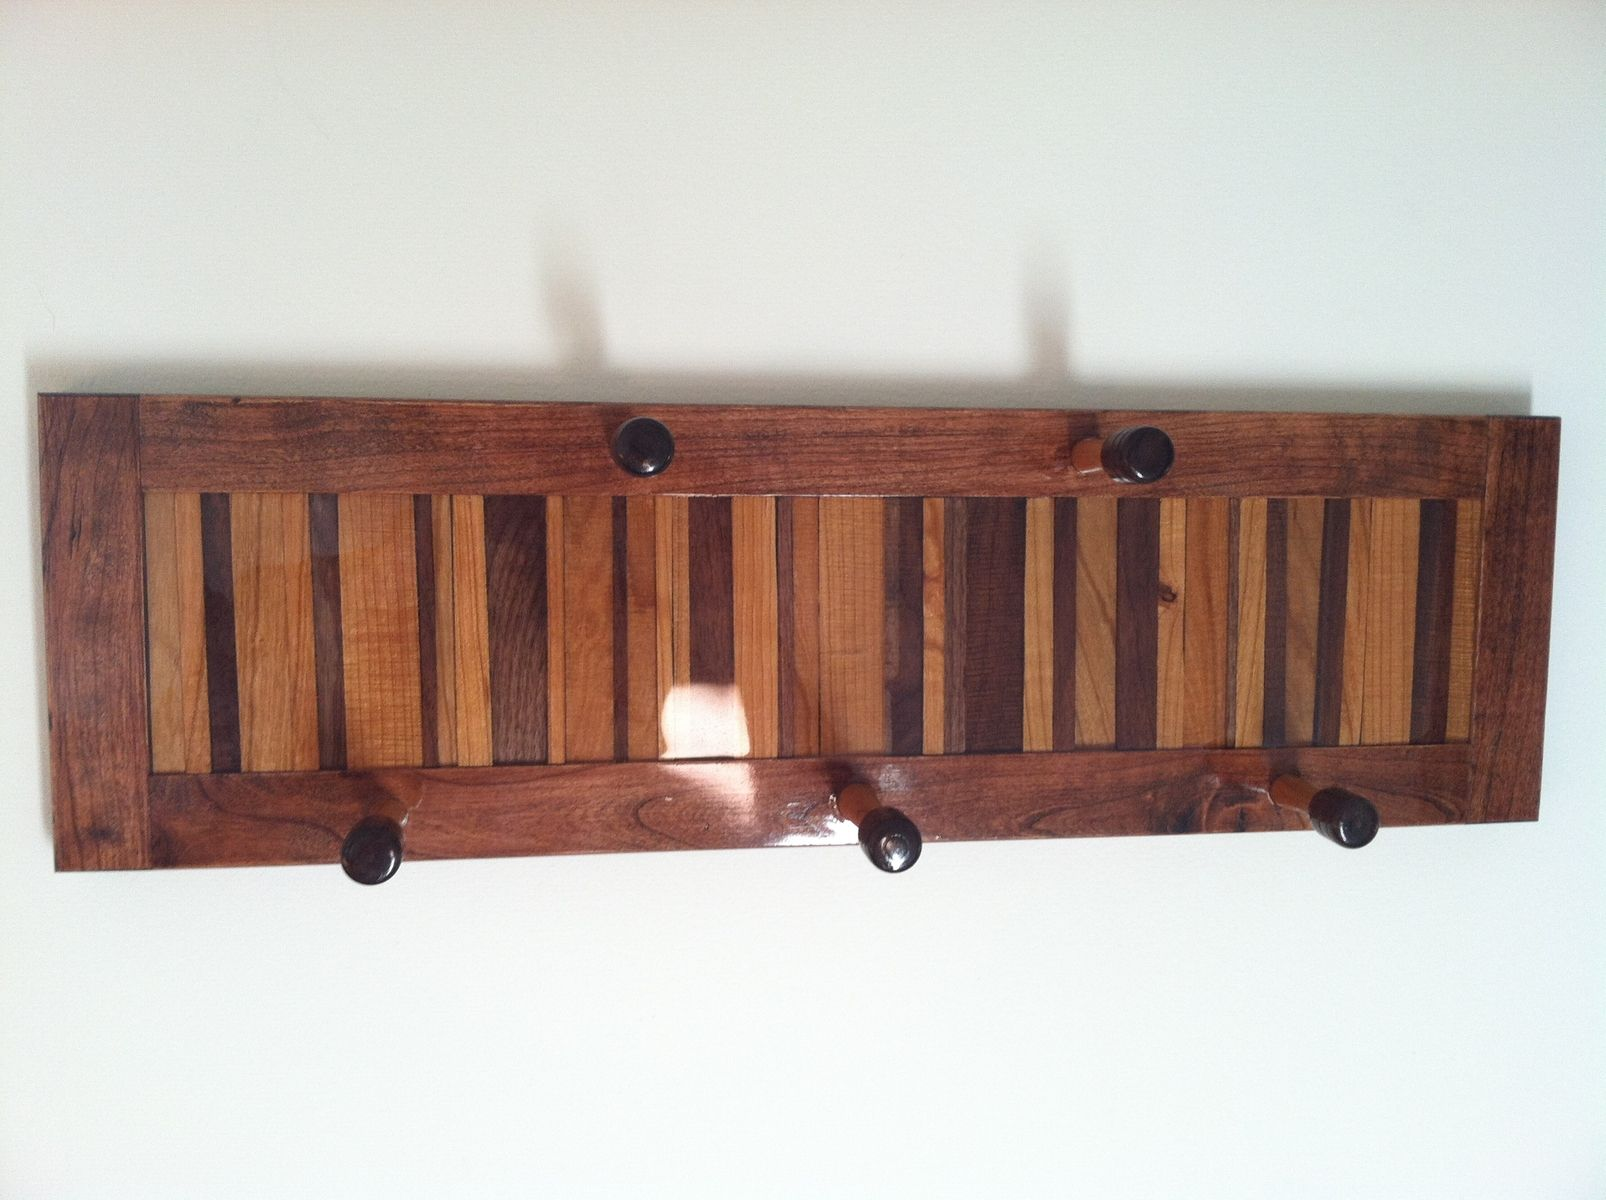 Awesome Design Of The Wall Mount Coat Rack With Brown Oak Wooden Color Materials Added With Some Hanger